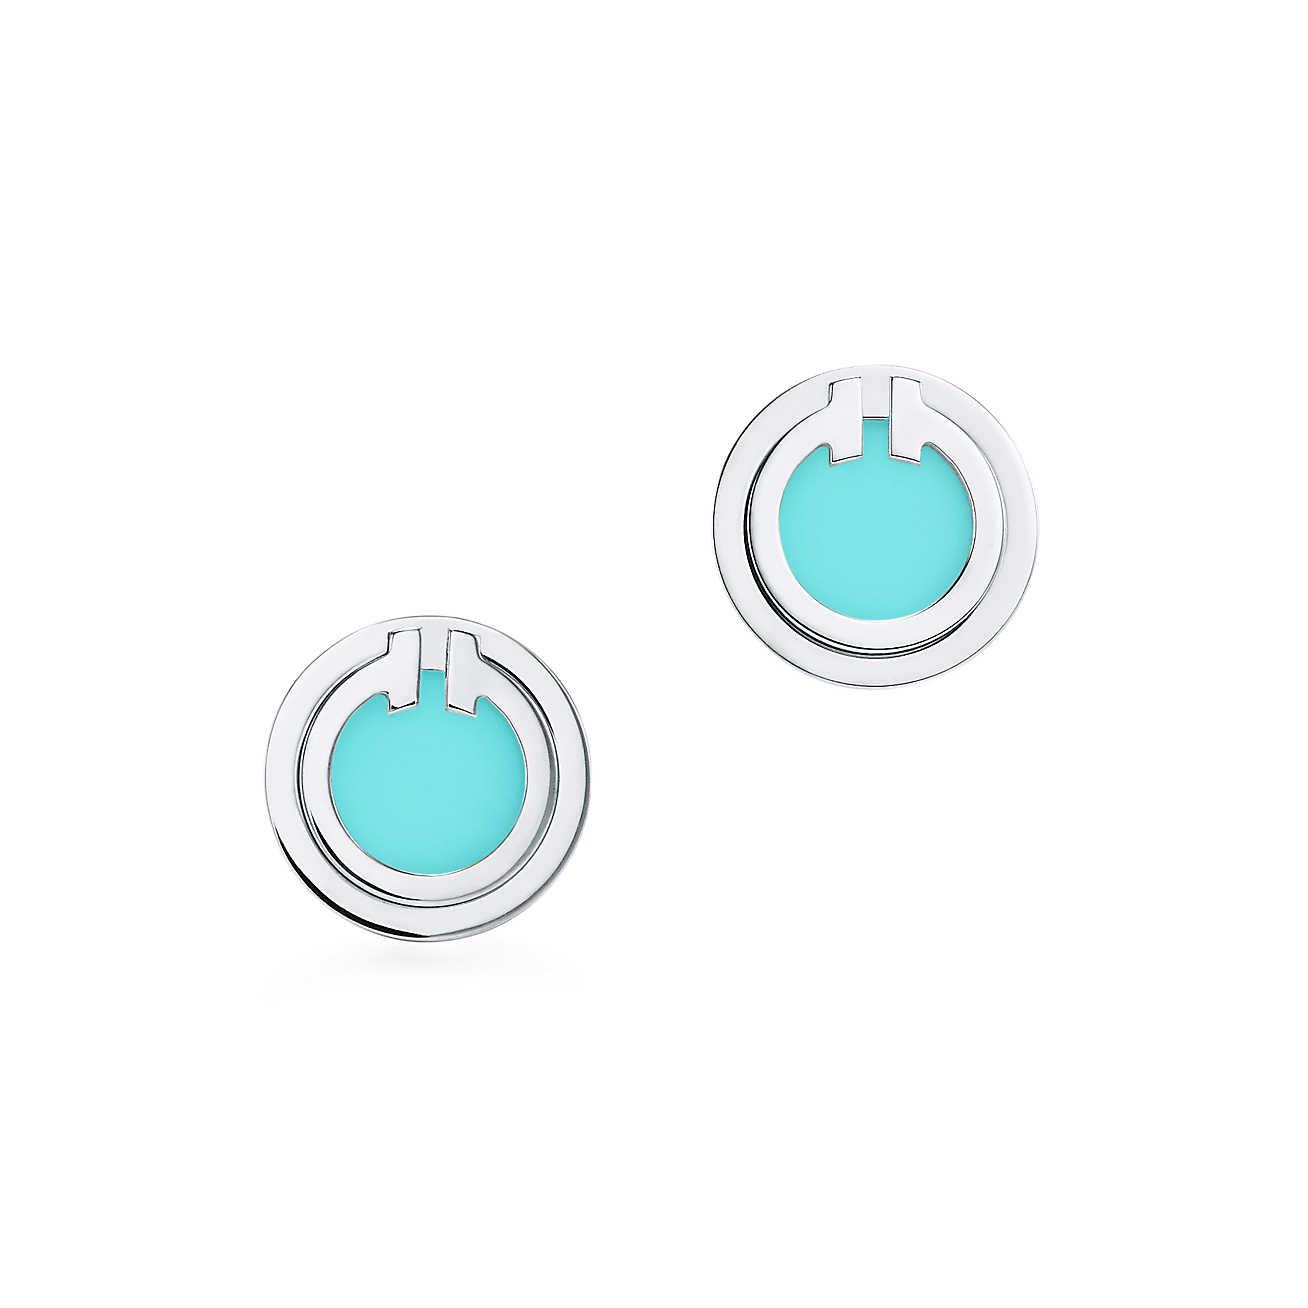 Tiffany T Two turquoise circle earrings in 18k white gold